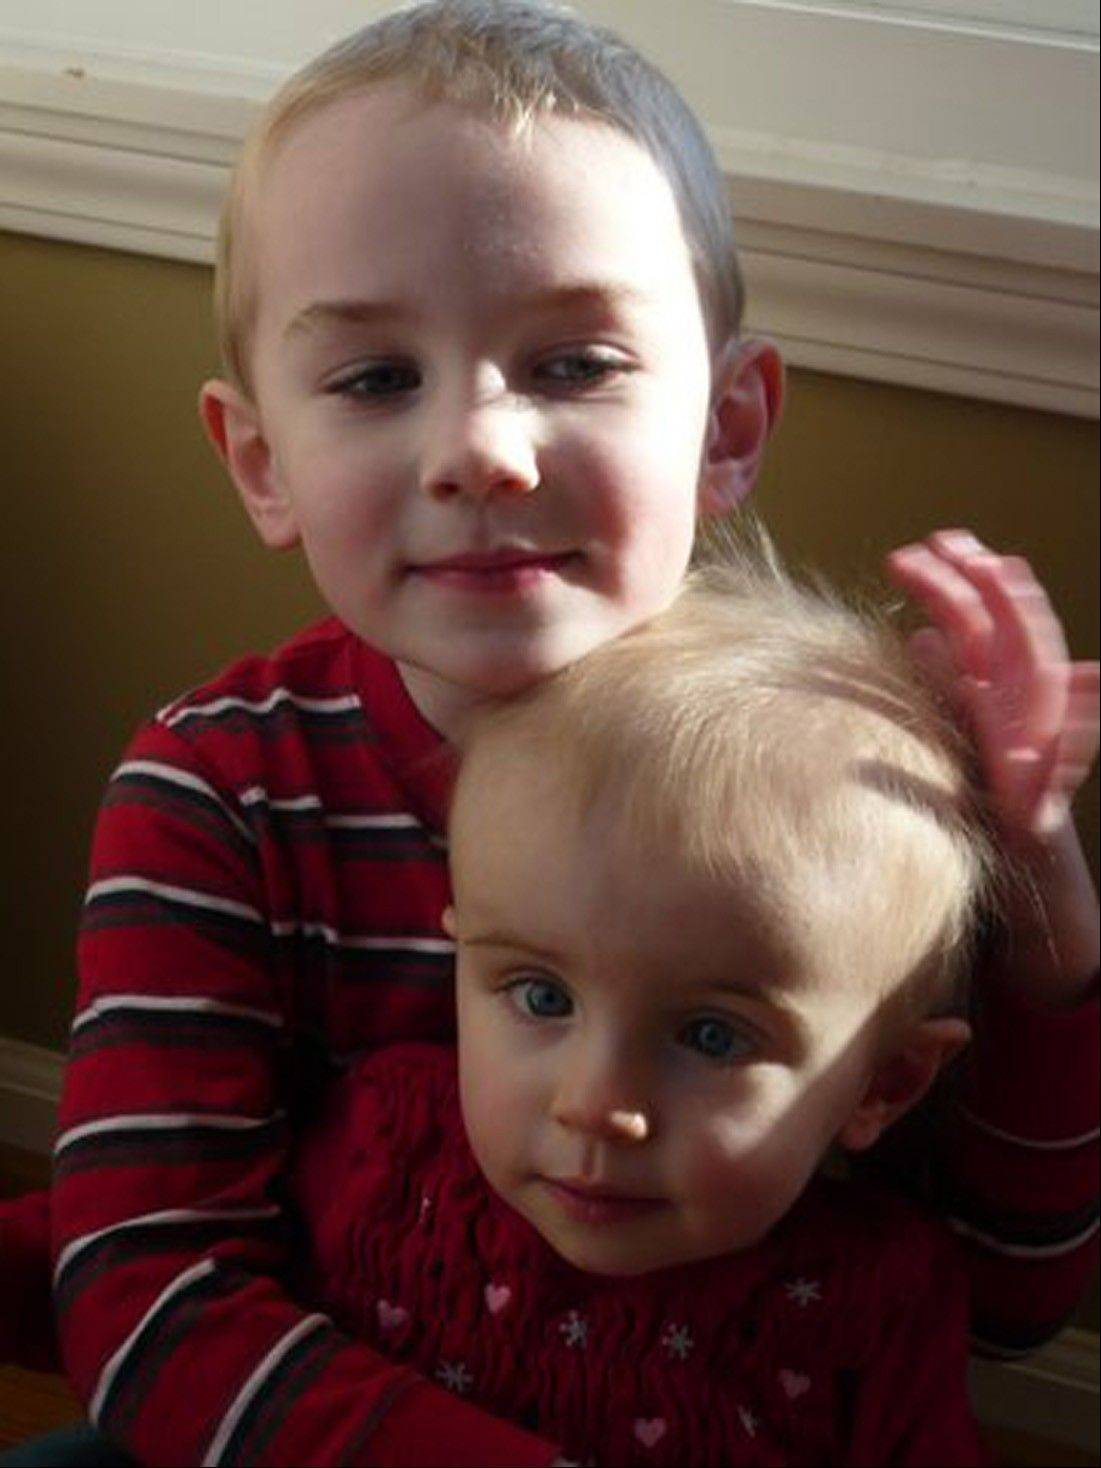 Friends and family of Paige Cichon, 2, shown getting a hug from older brother Will, 3, are able to keep up with her progress through caringbridge.org.